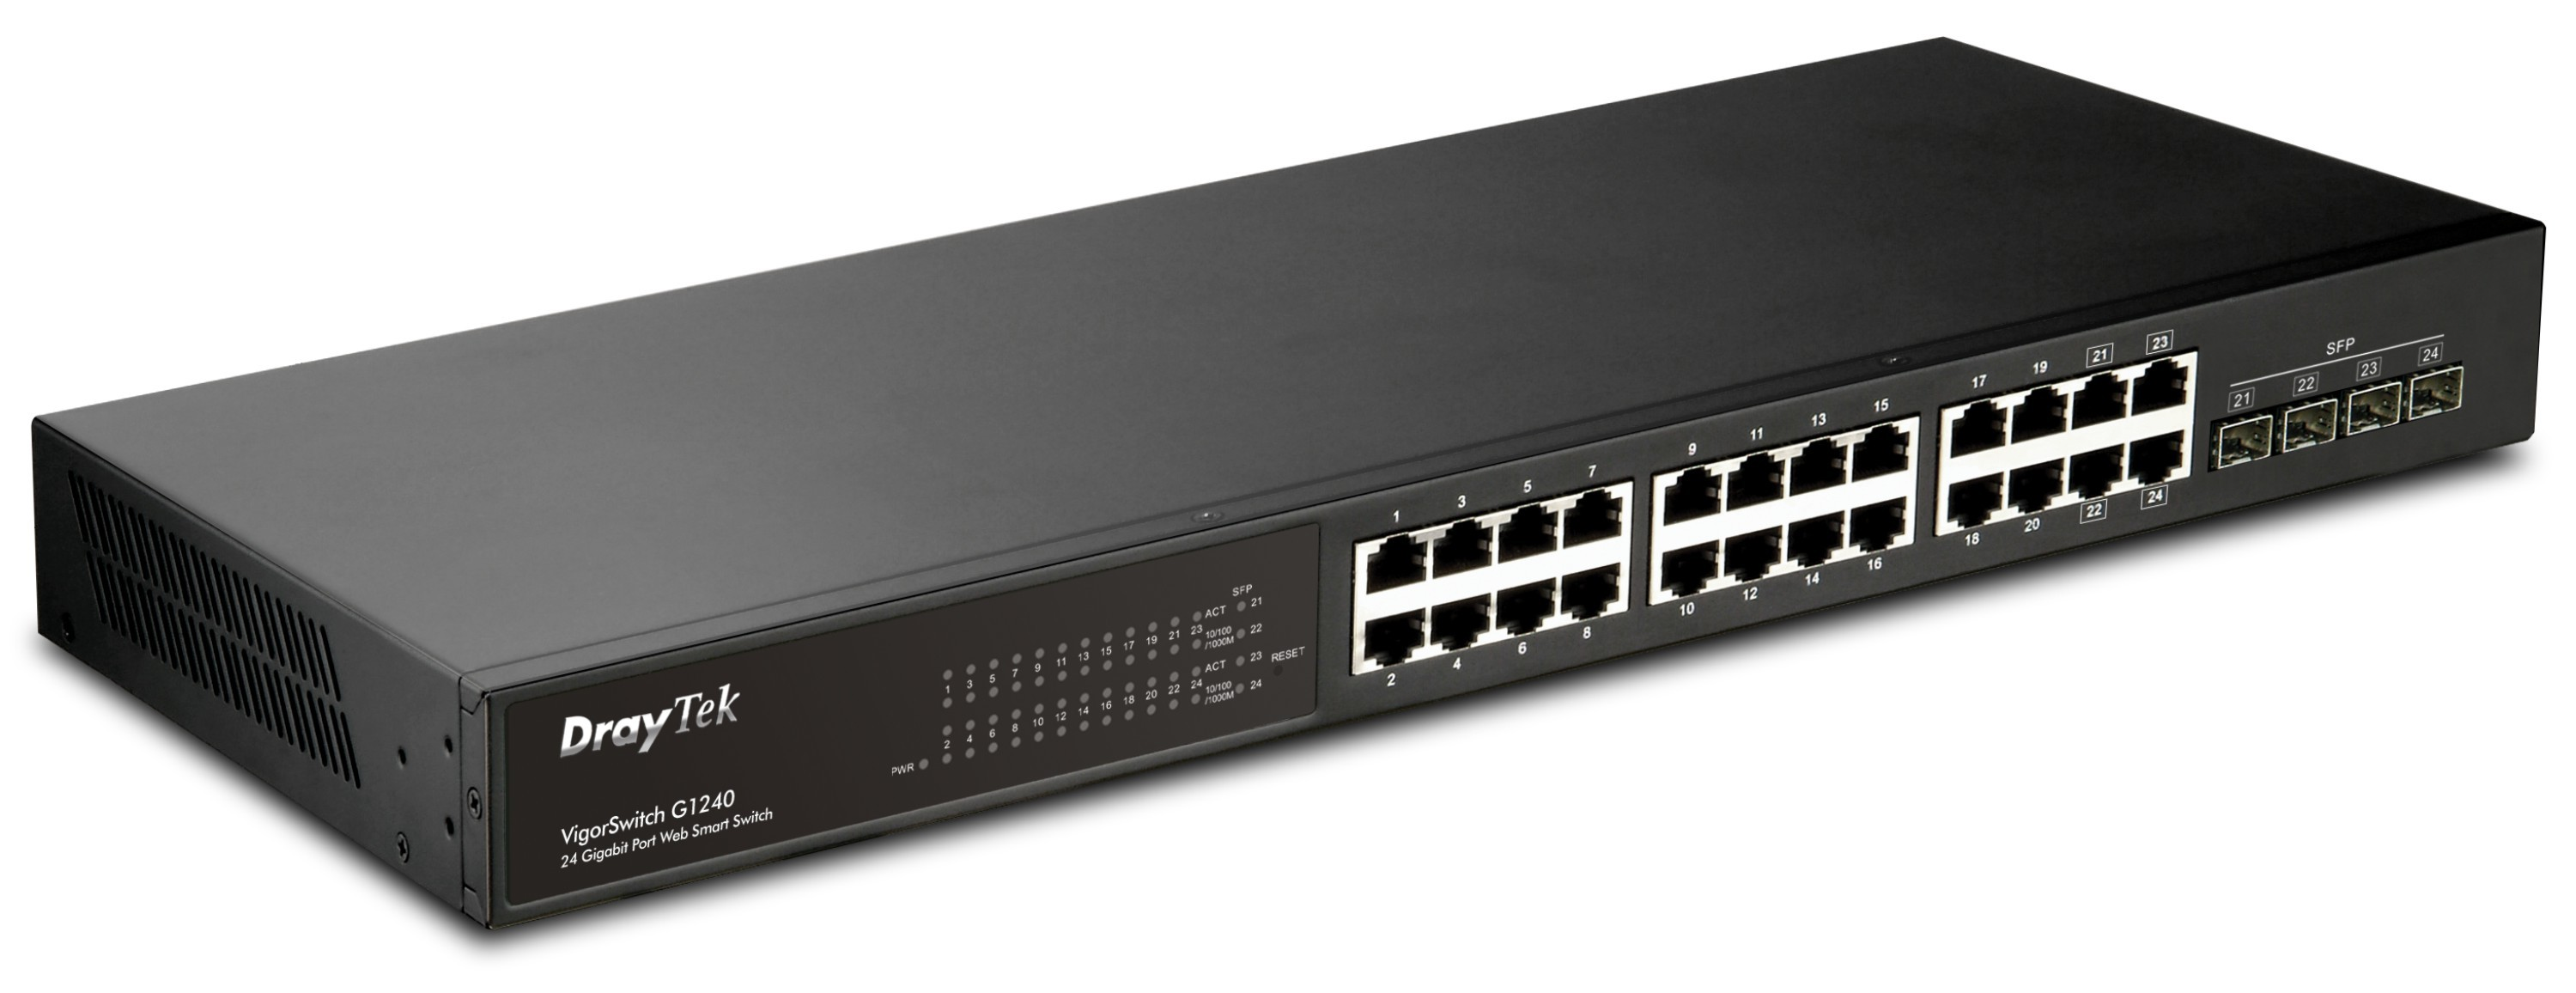 Draytek VigorSwitch G1240 PoE Gigabit Ethernet Switch